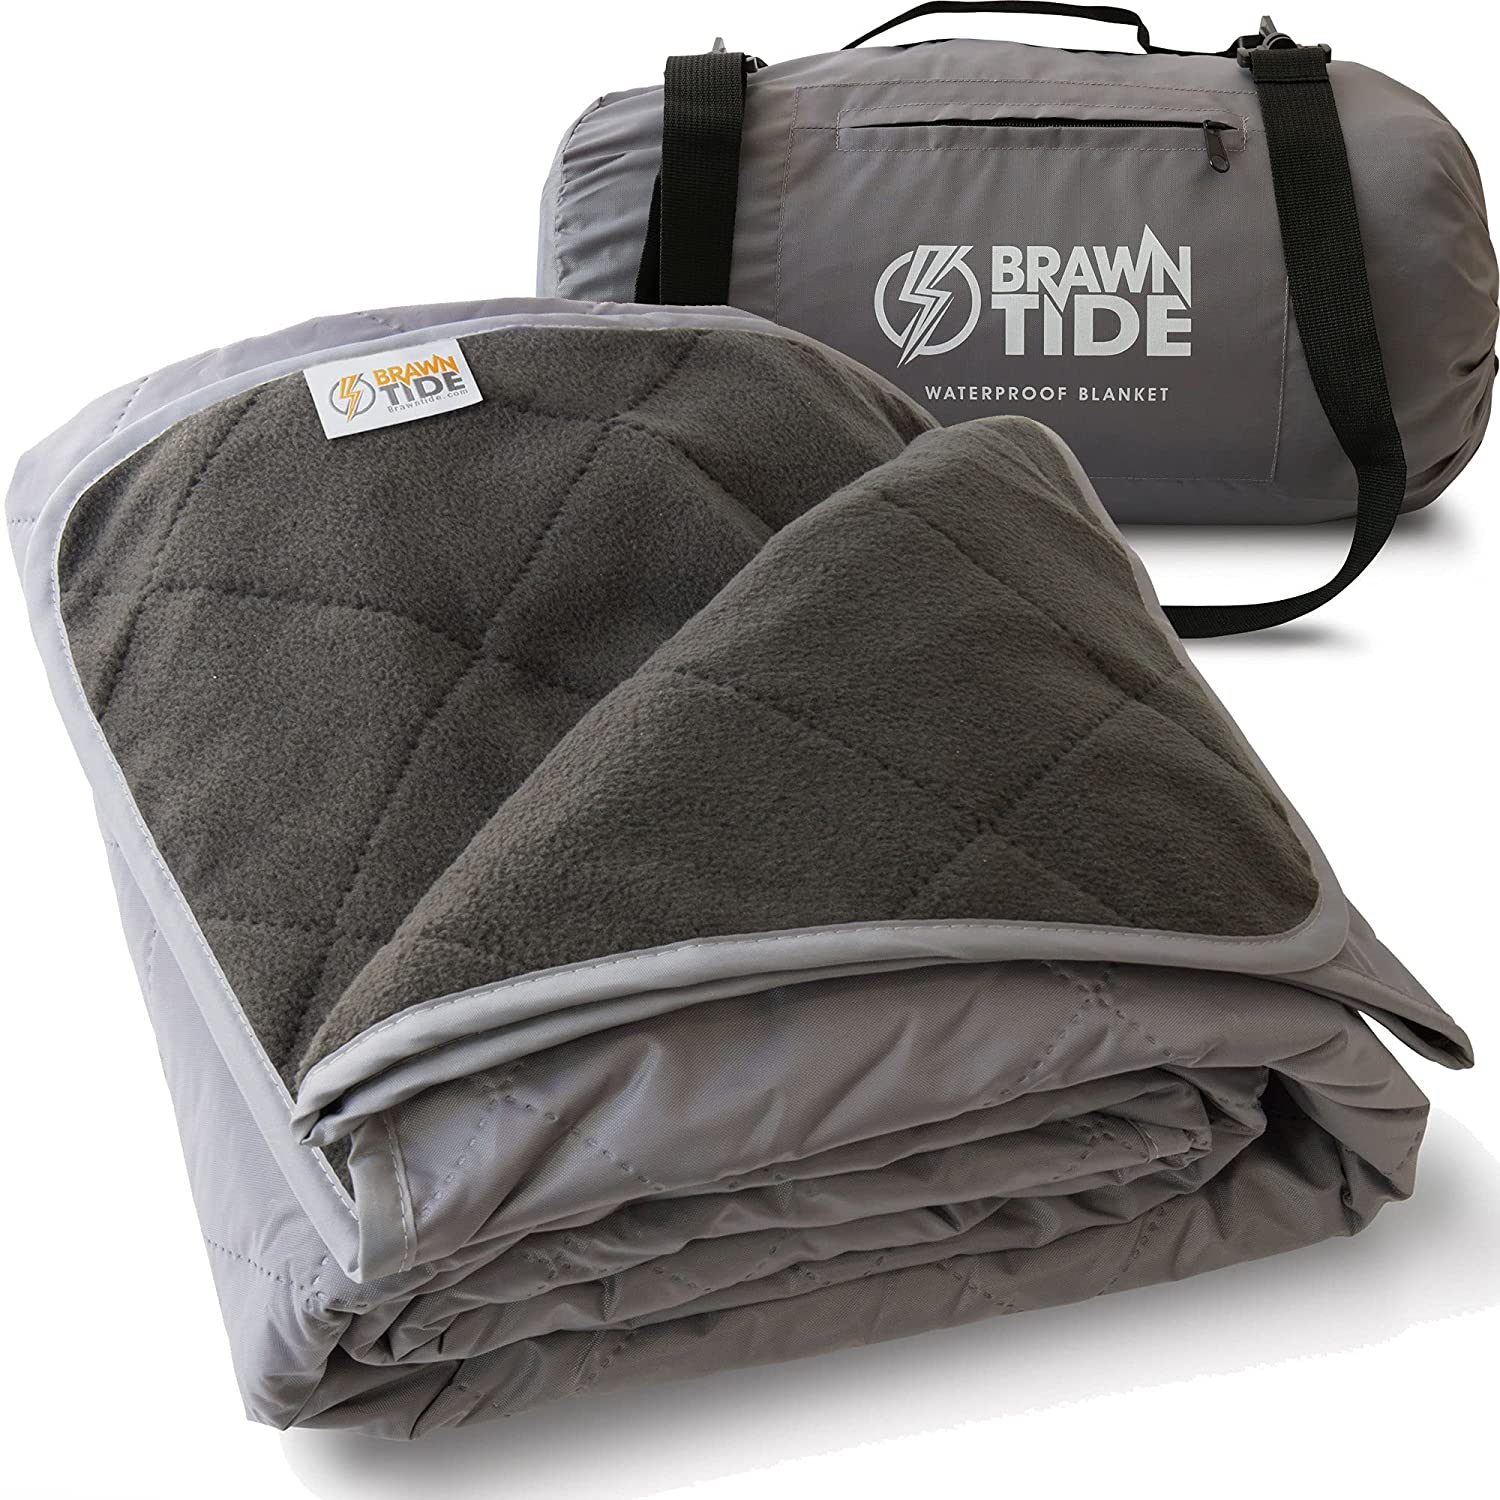 Brawntide Large Outdoor Waterproof Blanket - Quilted, Extra Thick Fleece, Warm, Windproof, Sandproof, Includes Stuff Sack, Shoulder Strap, Ideal Blanket for Beaches, Picnics, Camping, Stadiums, Dogs